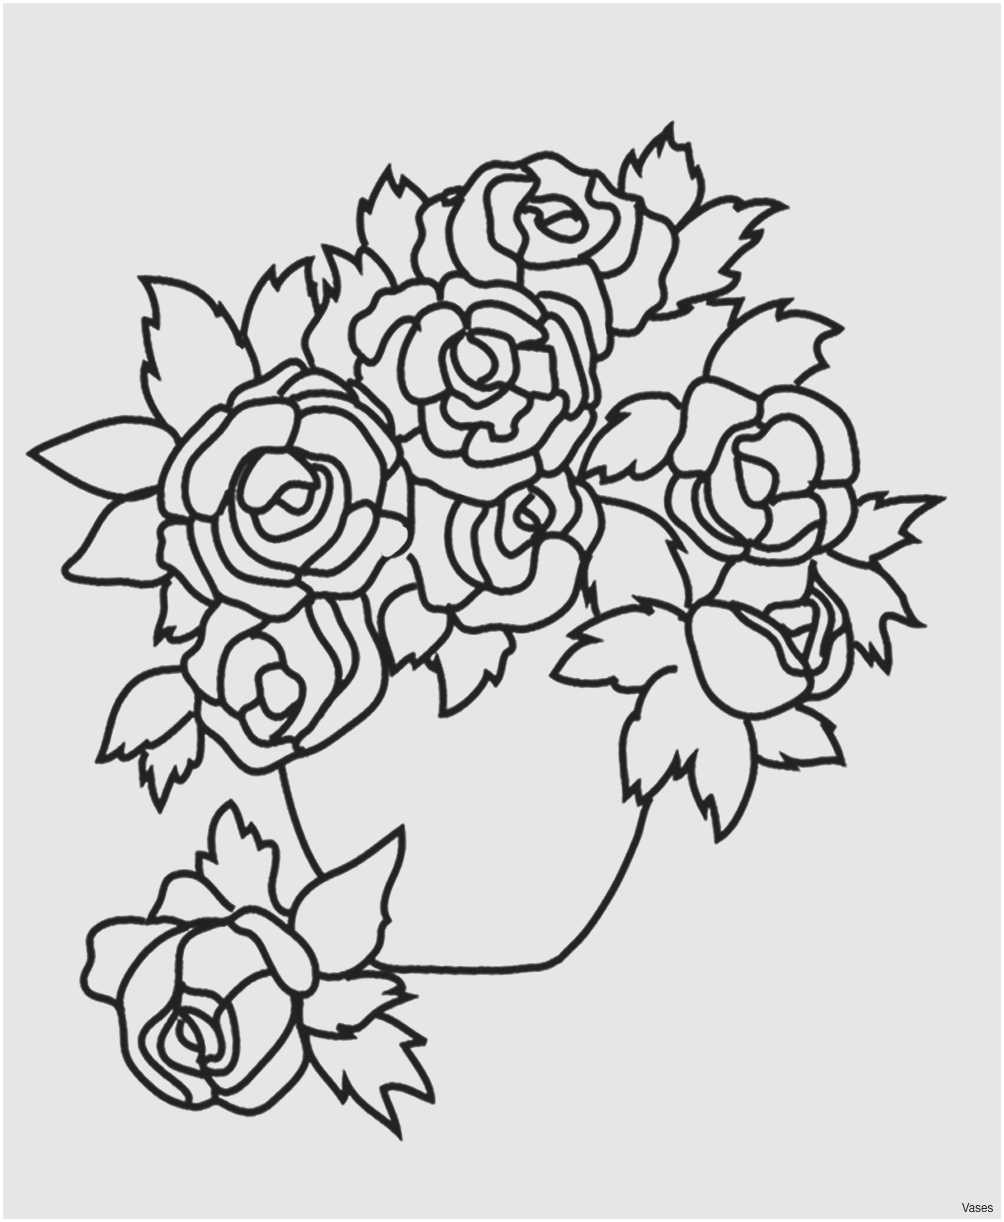 black vase fillers of 16 lovely flowers in a tall white vase bogekompresorturkiye intended for vases flowers in vase coloring pages a flower top i 0d flowers awesome